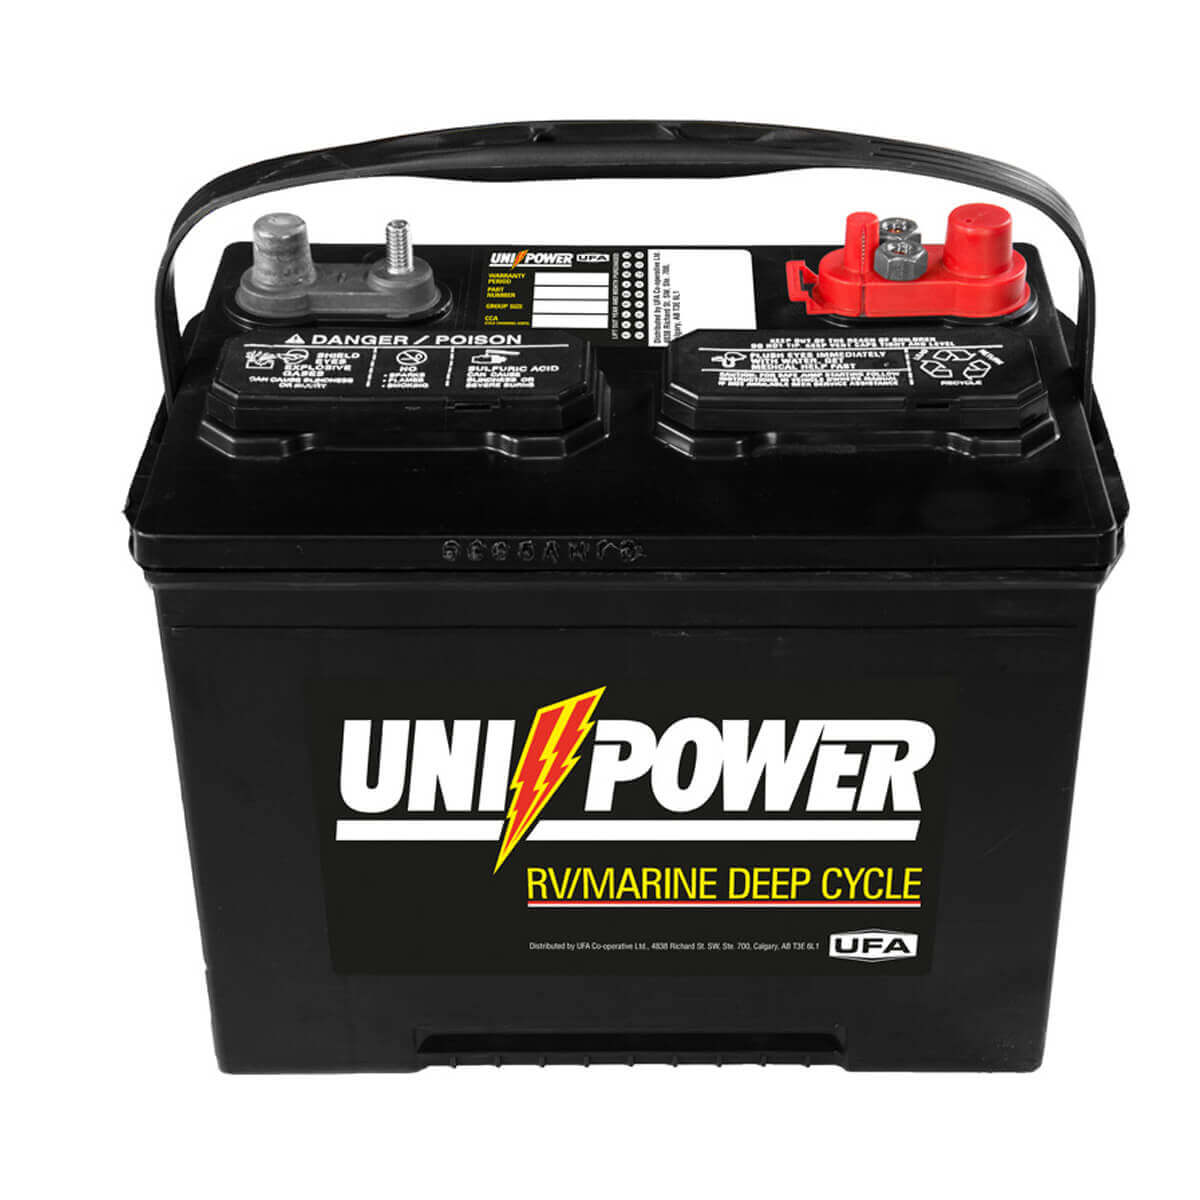 Uni-Power Deep Cycle Battery - 8-24MP